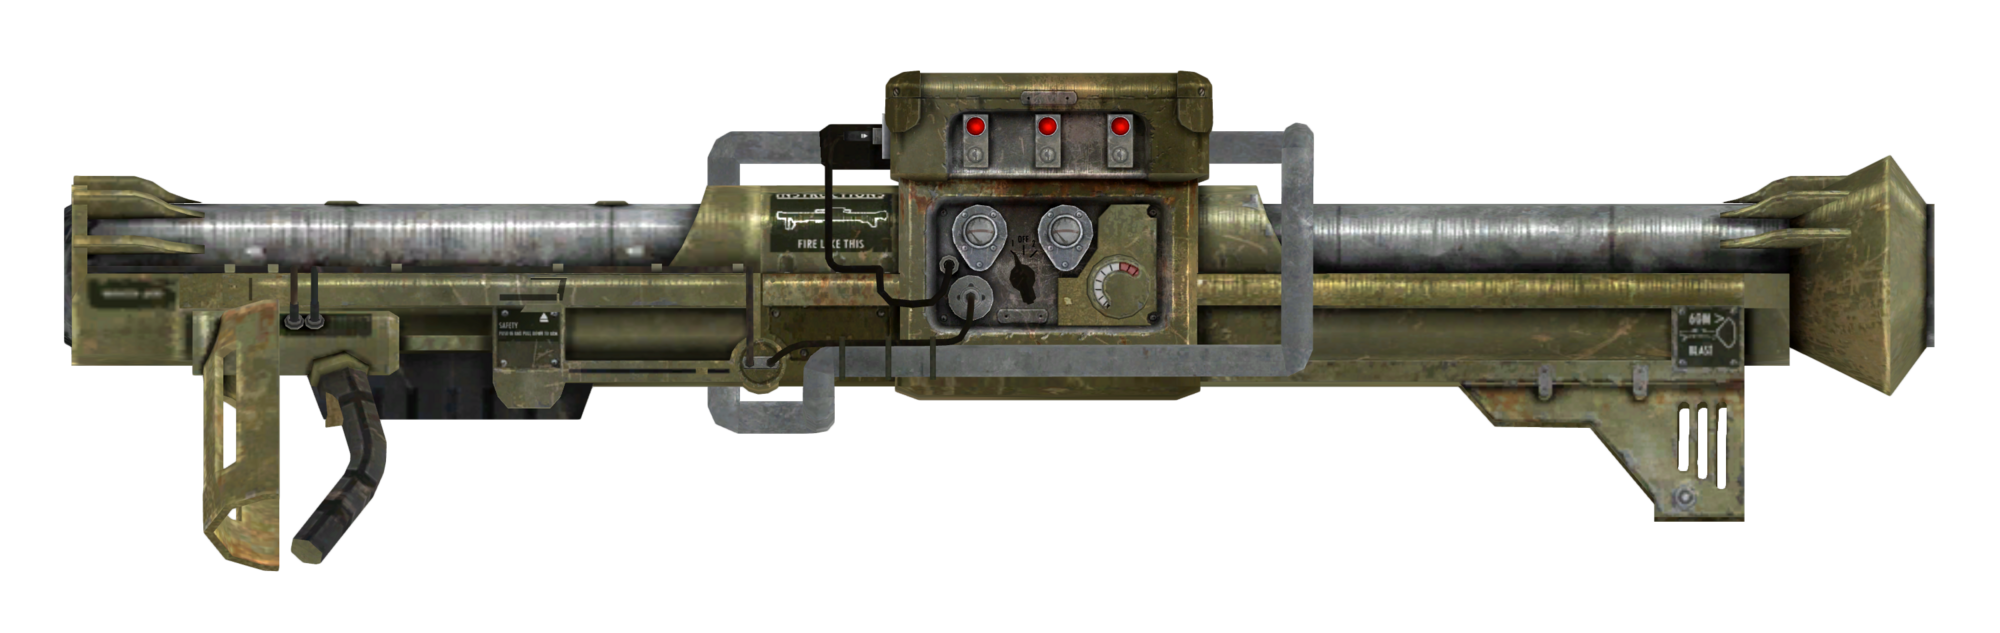 2000?cb=20110209030304 tesla cannon (beta) fallout wiki fandom powered by wikia fallout 3 presidential metro fuse box at highcare.asia